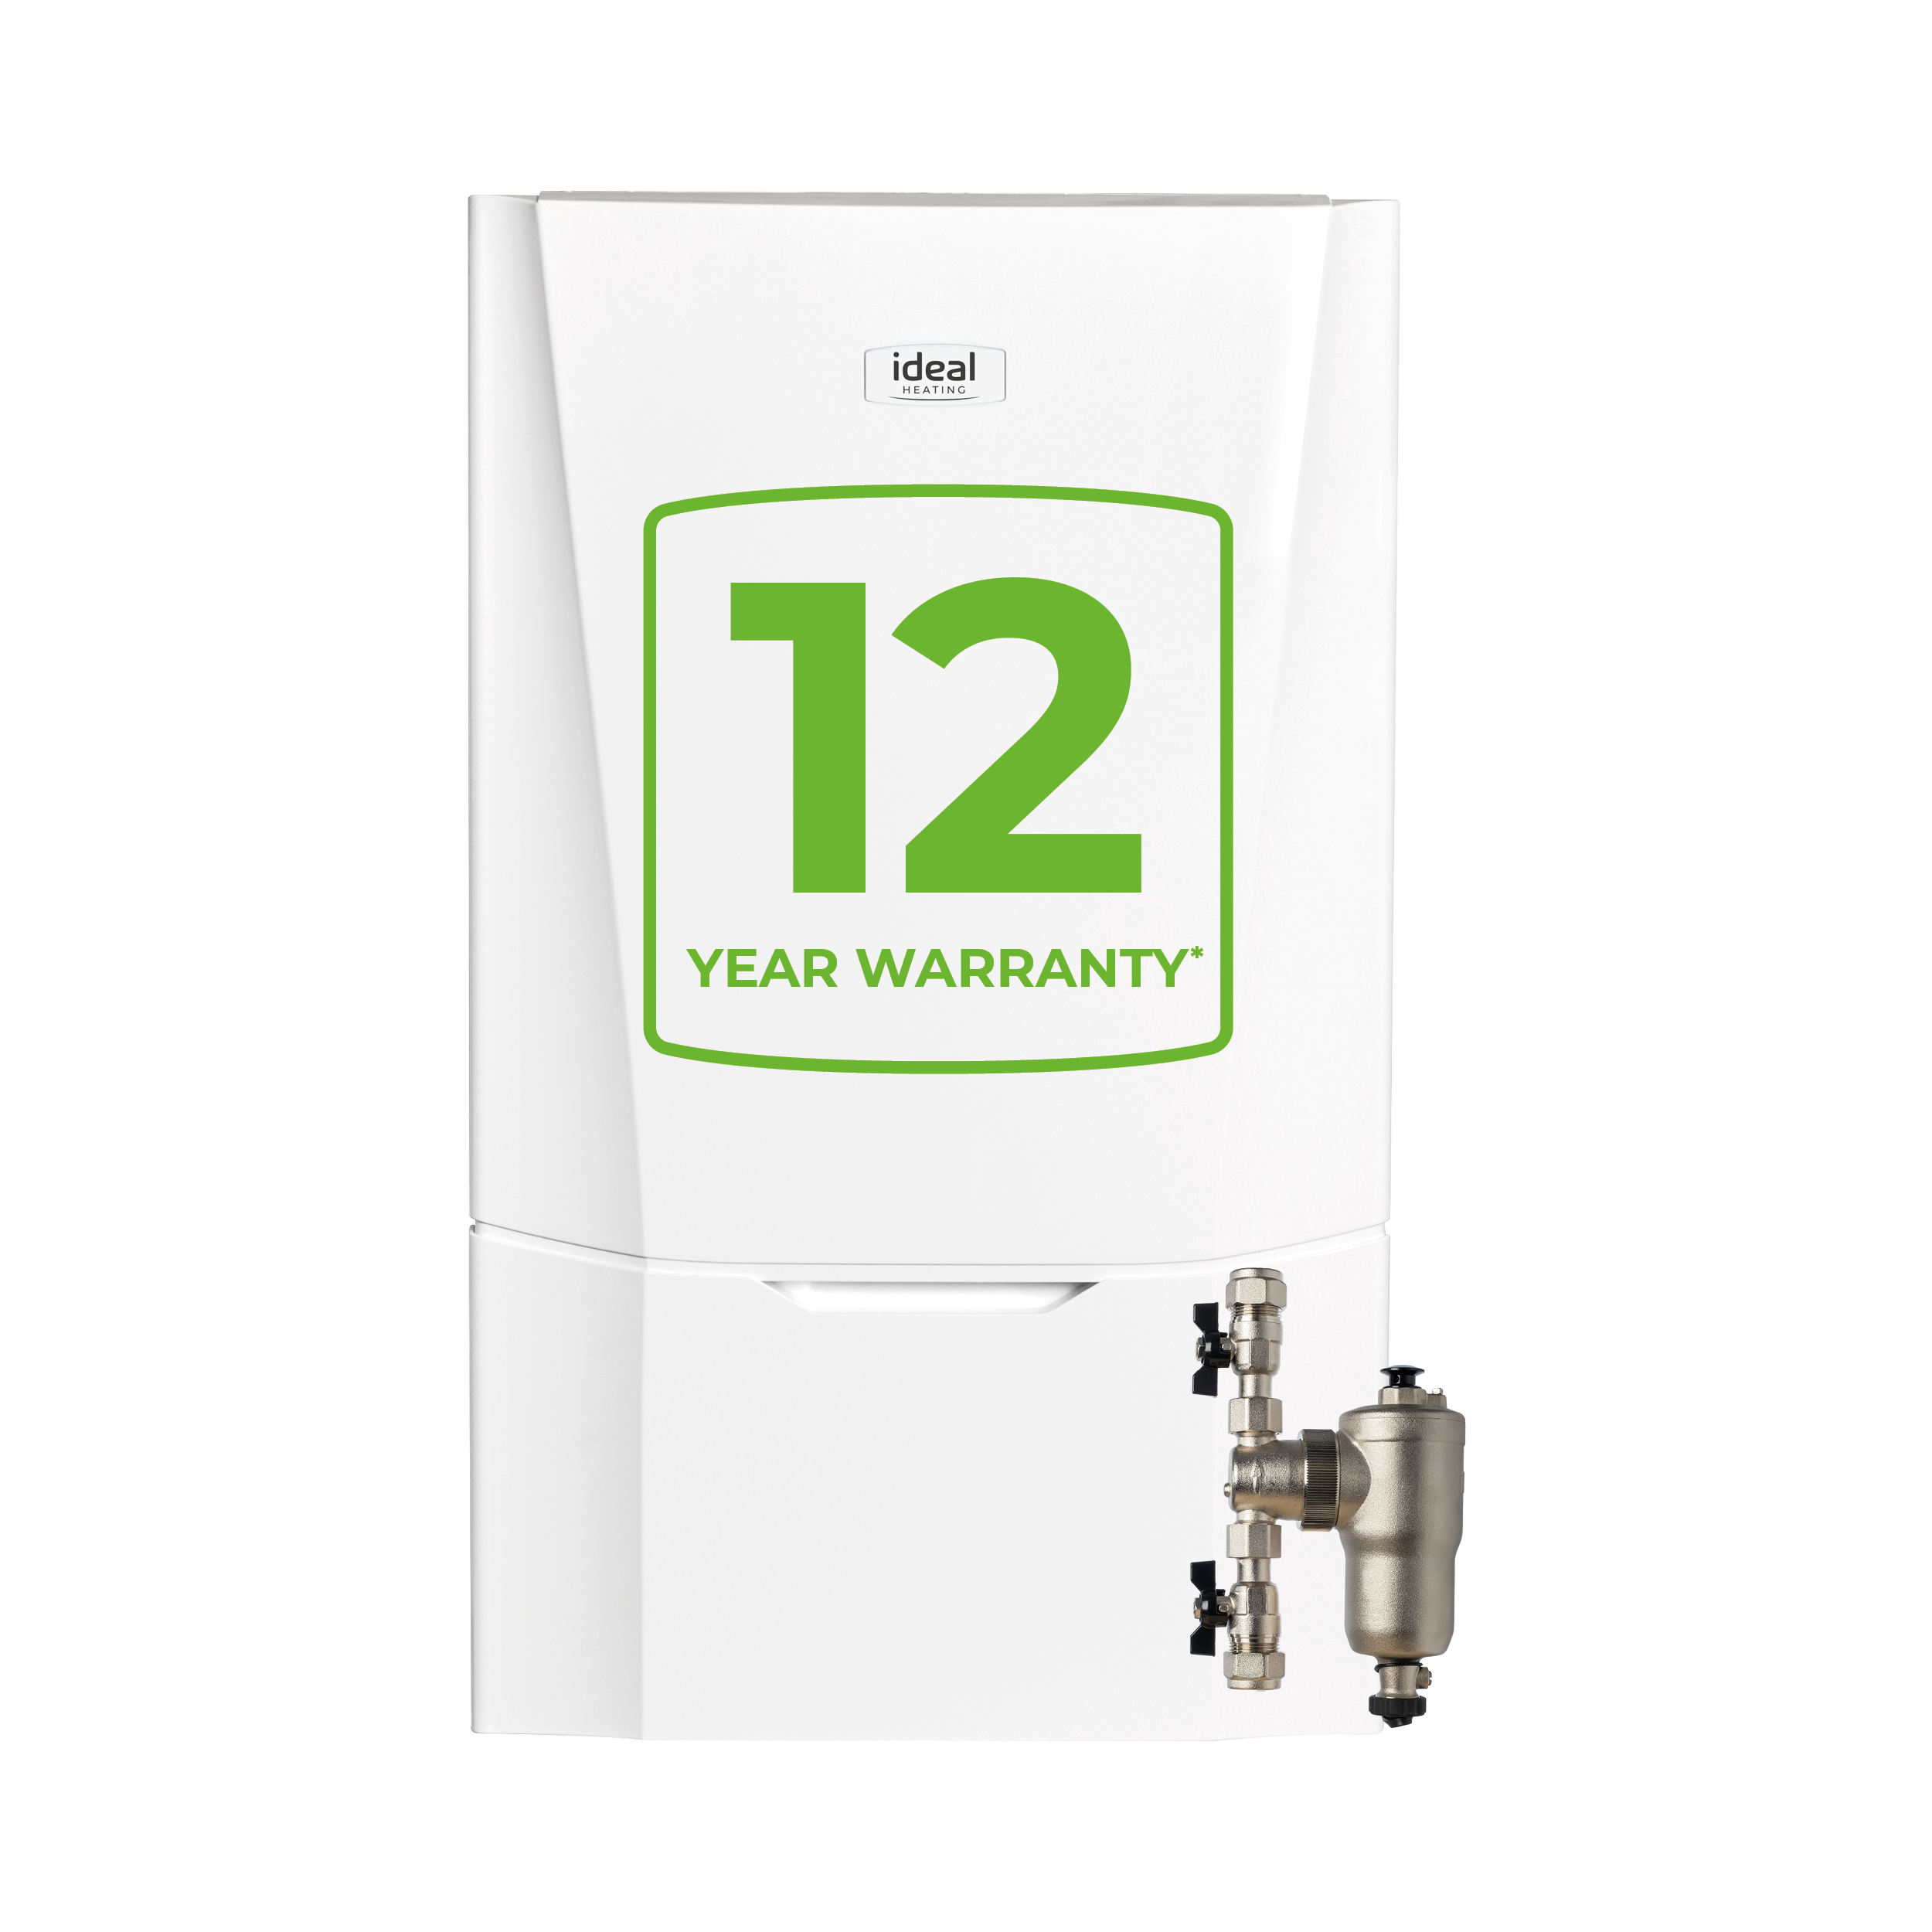 Ideal 12 year warranty with Aquavolt boiler installers in Sheffield